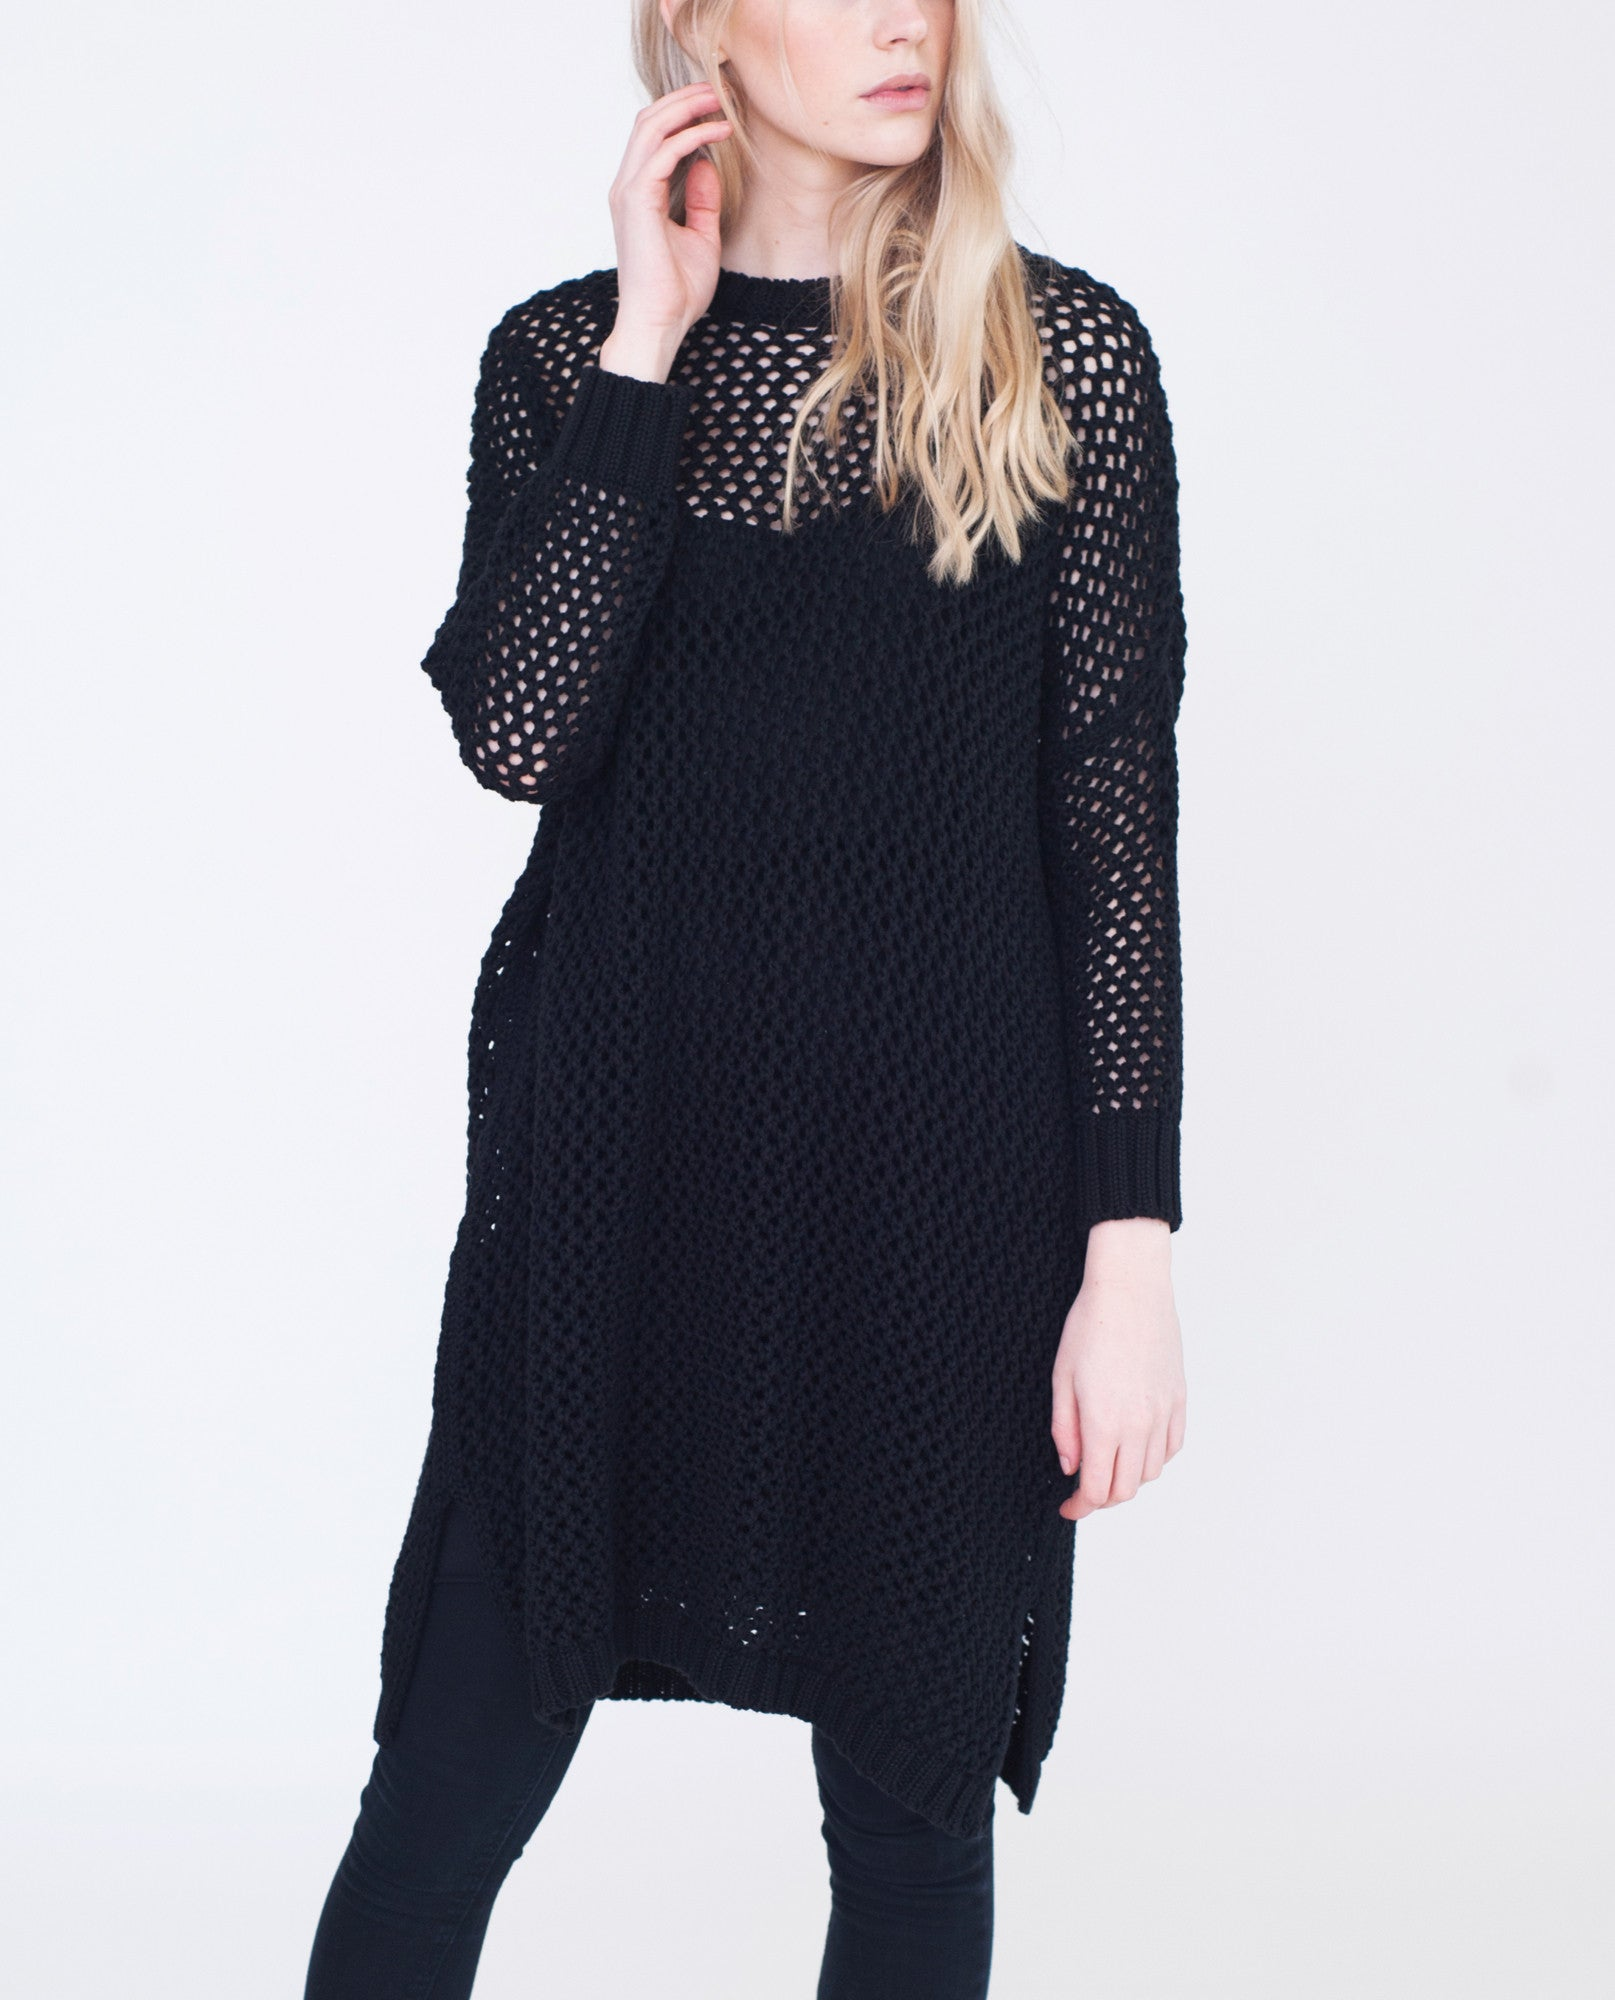 AMANDA Cotton Loose Knit Jumper Dress from Beaumont Organic